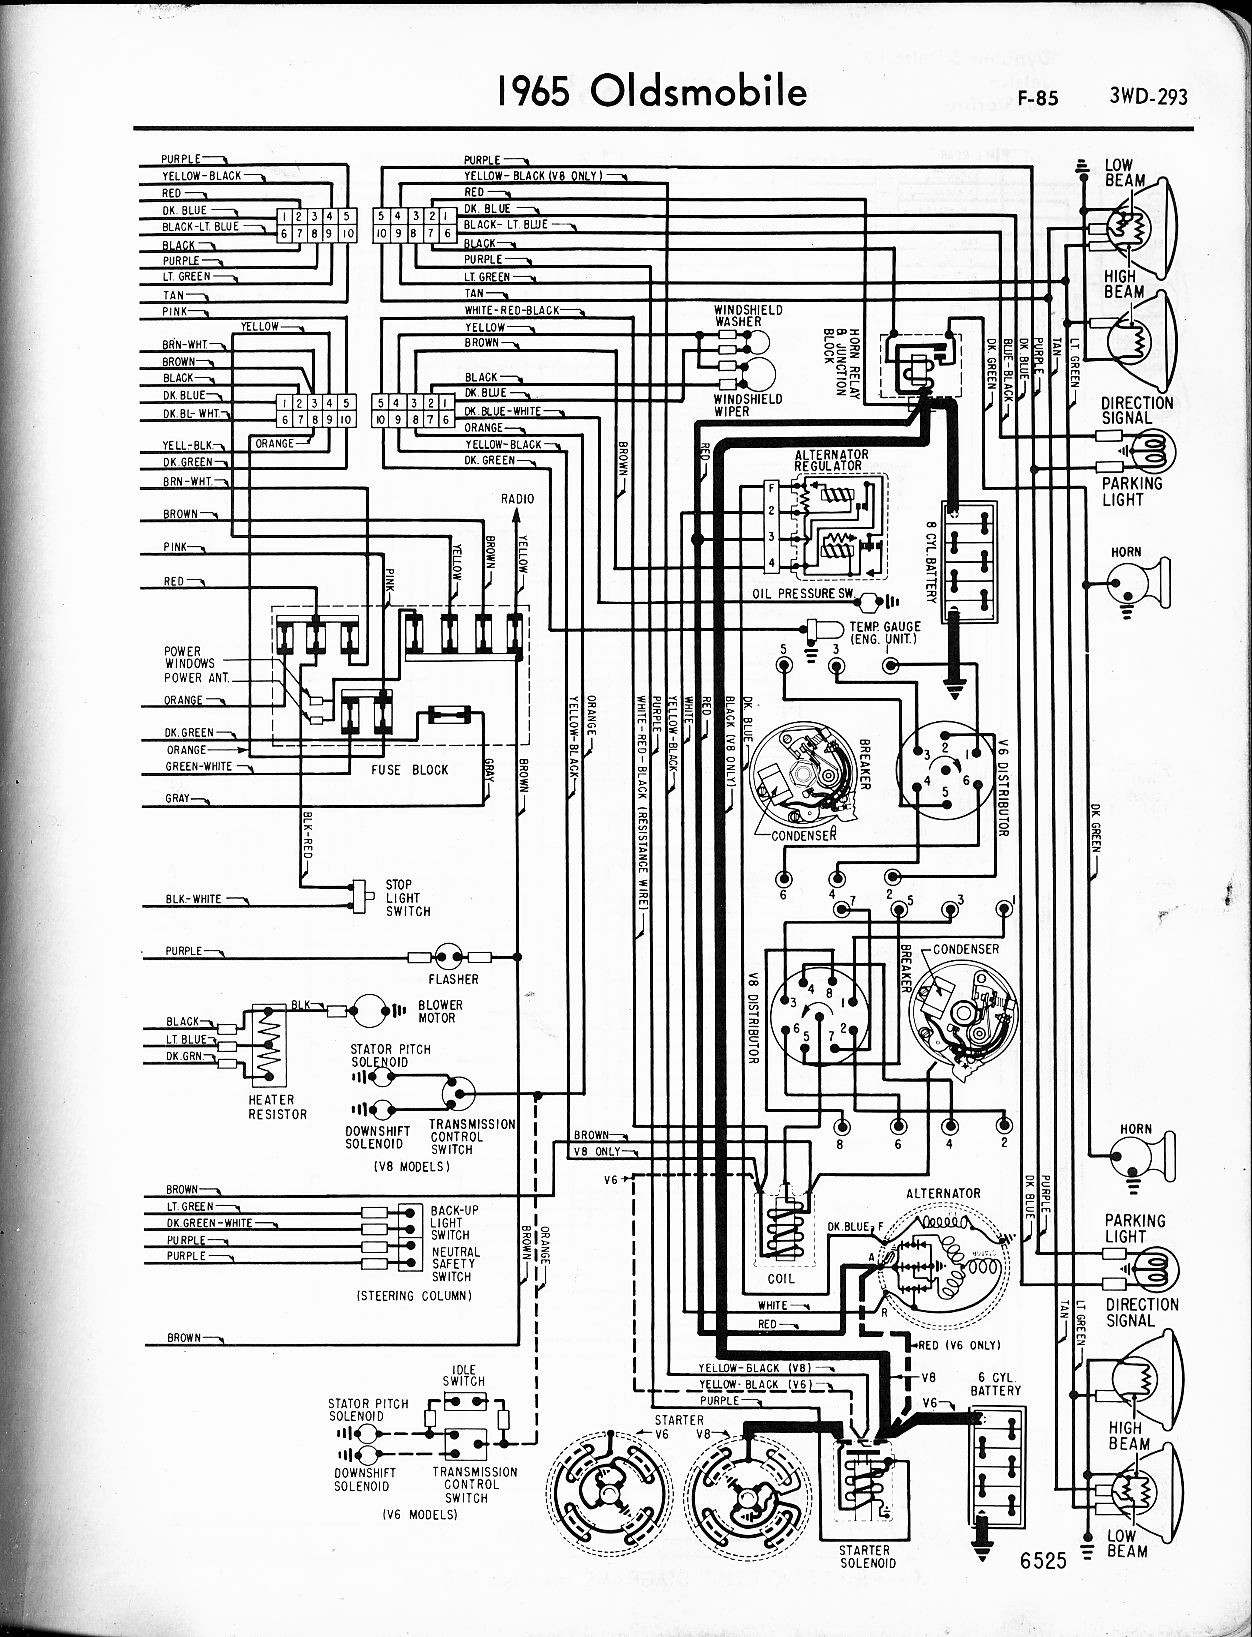 oldsmobile 88 engine diagram enthusiast wiring diagrams u2022 rh rasalibre co 1971 Oldsmobile Cutlass Wiring-Diagram 1971 Oldsmobile Cutlass Wiring-Diagram